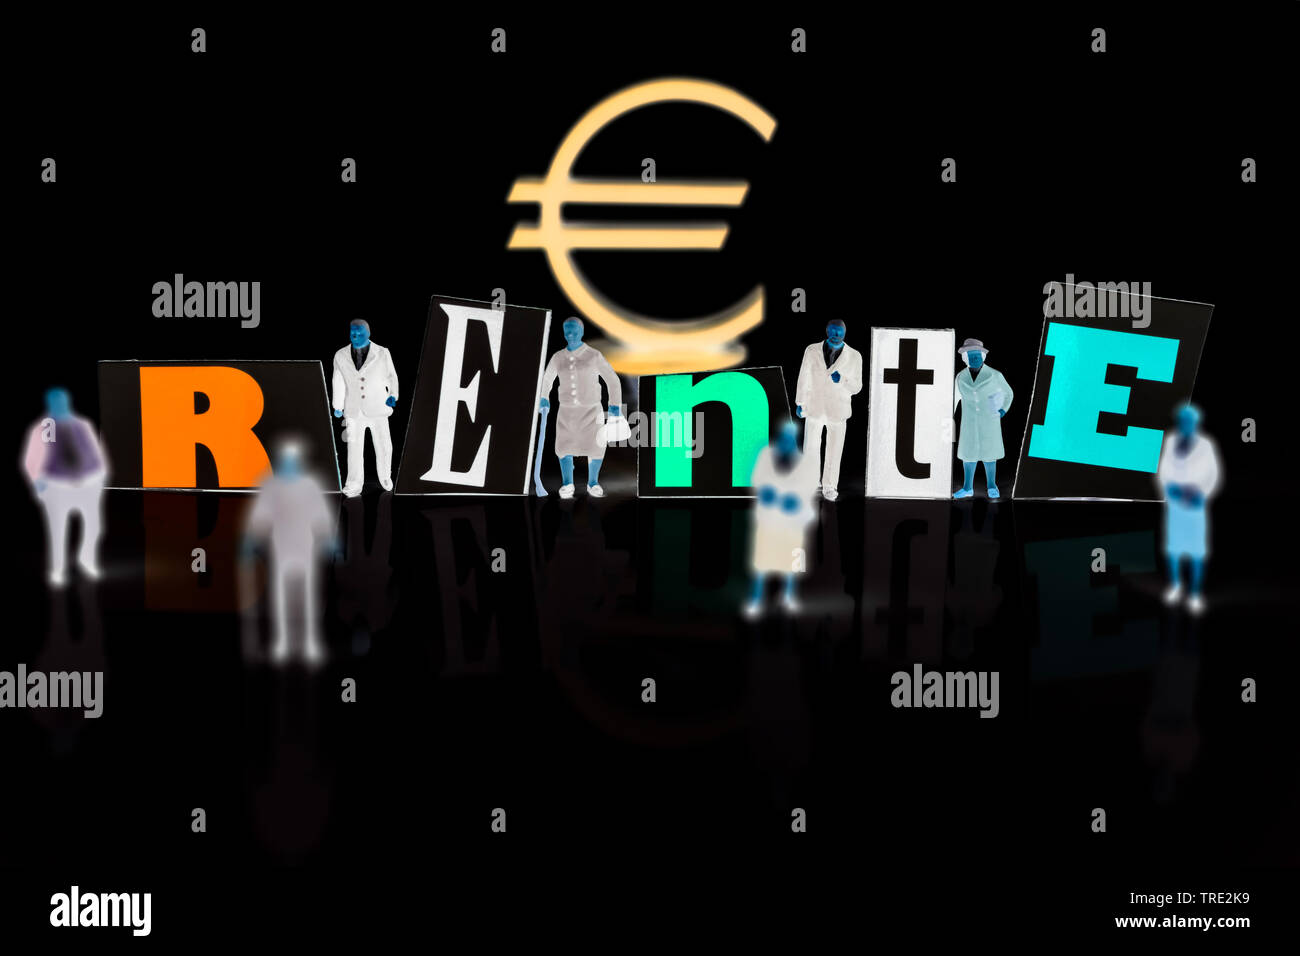 figures with Euro sign and the word Rente, retirement provision, Germany Stock Photo